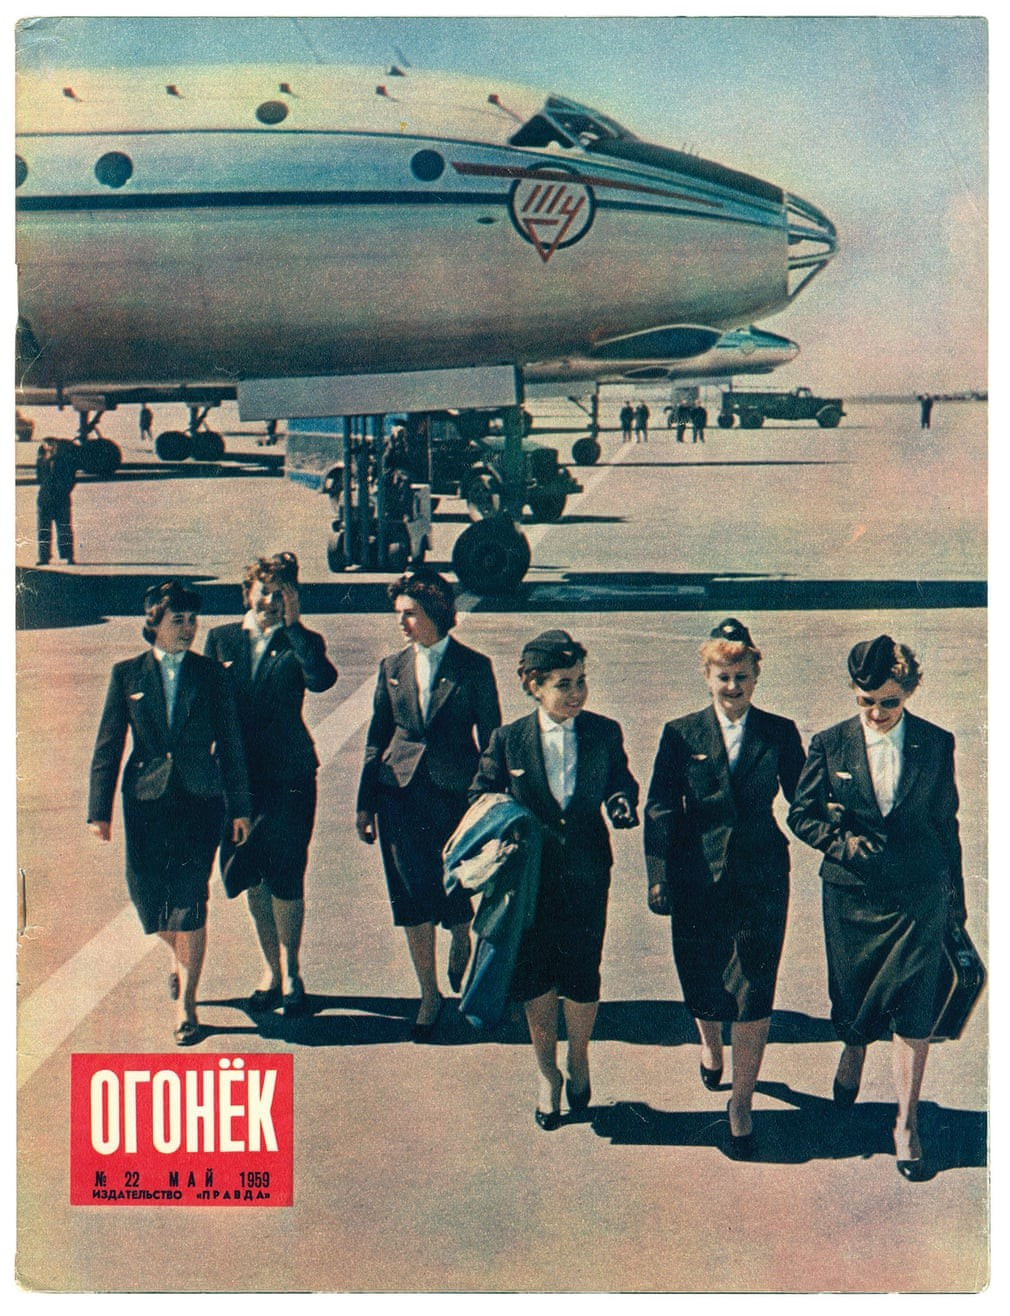 Flight attendants disembark from a TupolevTu-104 at Vnukovo airport in Moscow, 1959. The image features on the cover of Ogonek magazine, one of the oldest weekly publications in Russia FacebookTwitter